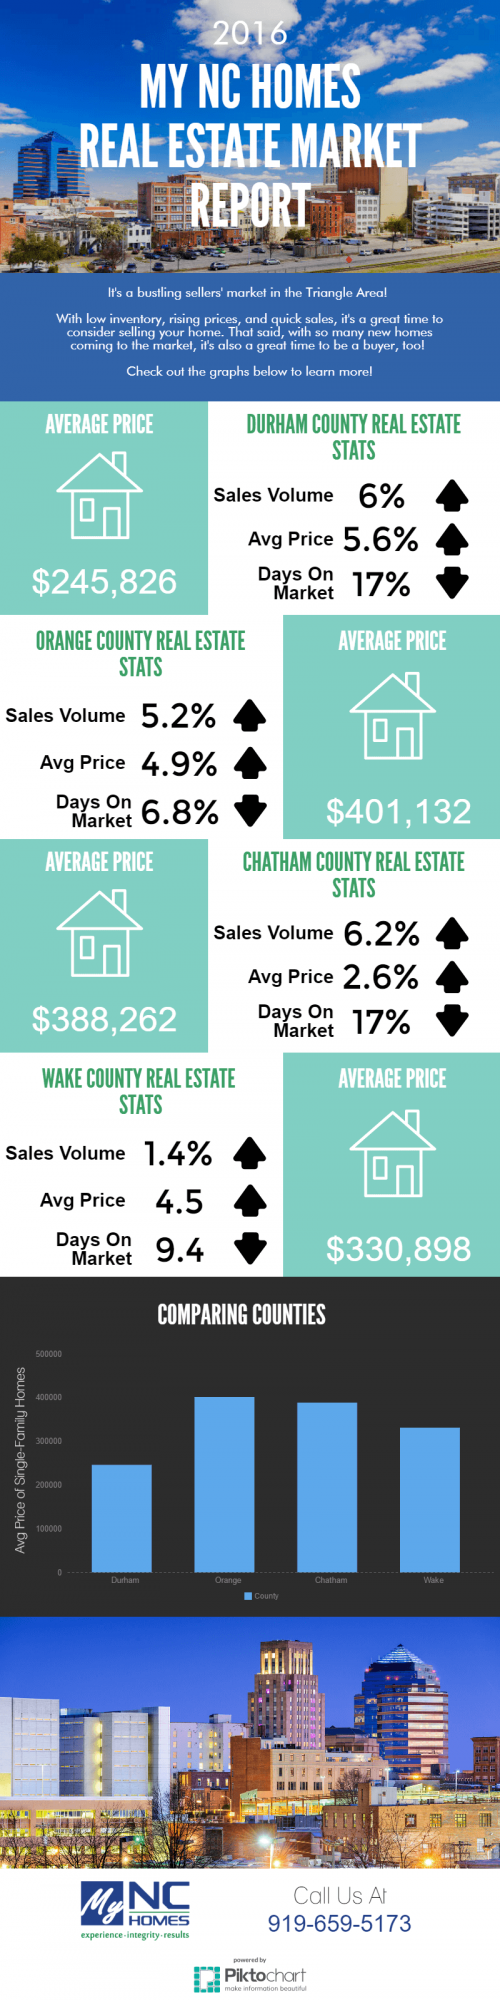 December 2016 real estate market statistics